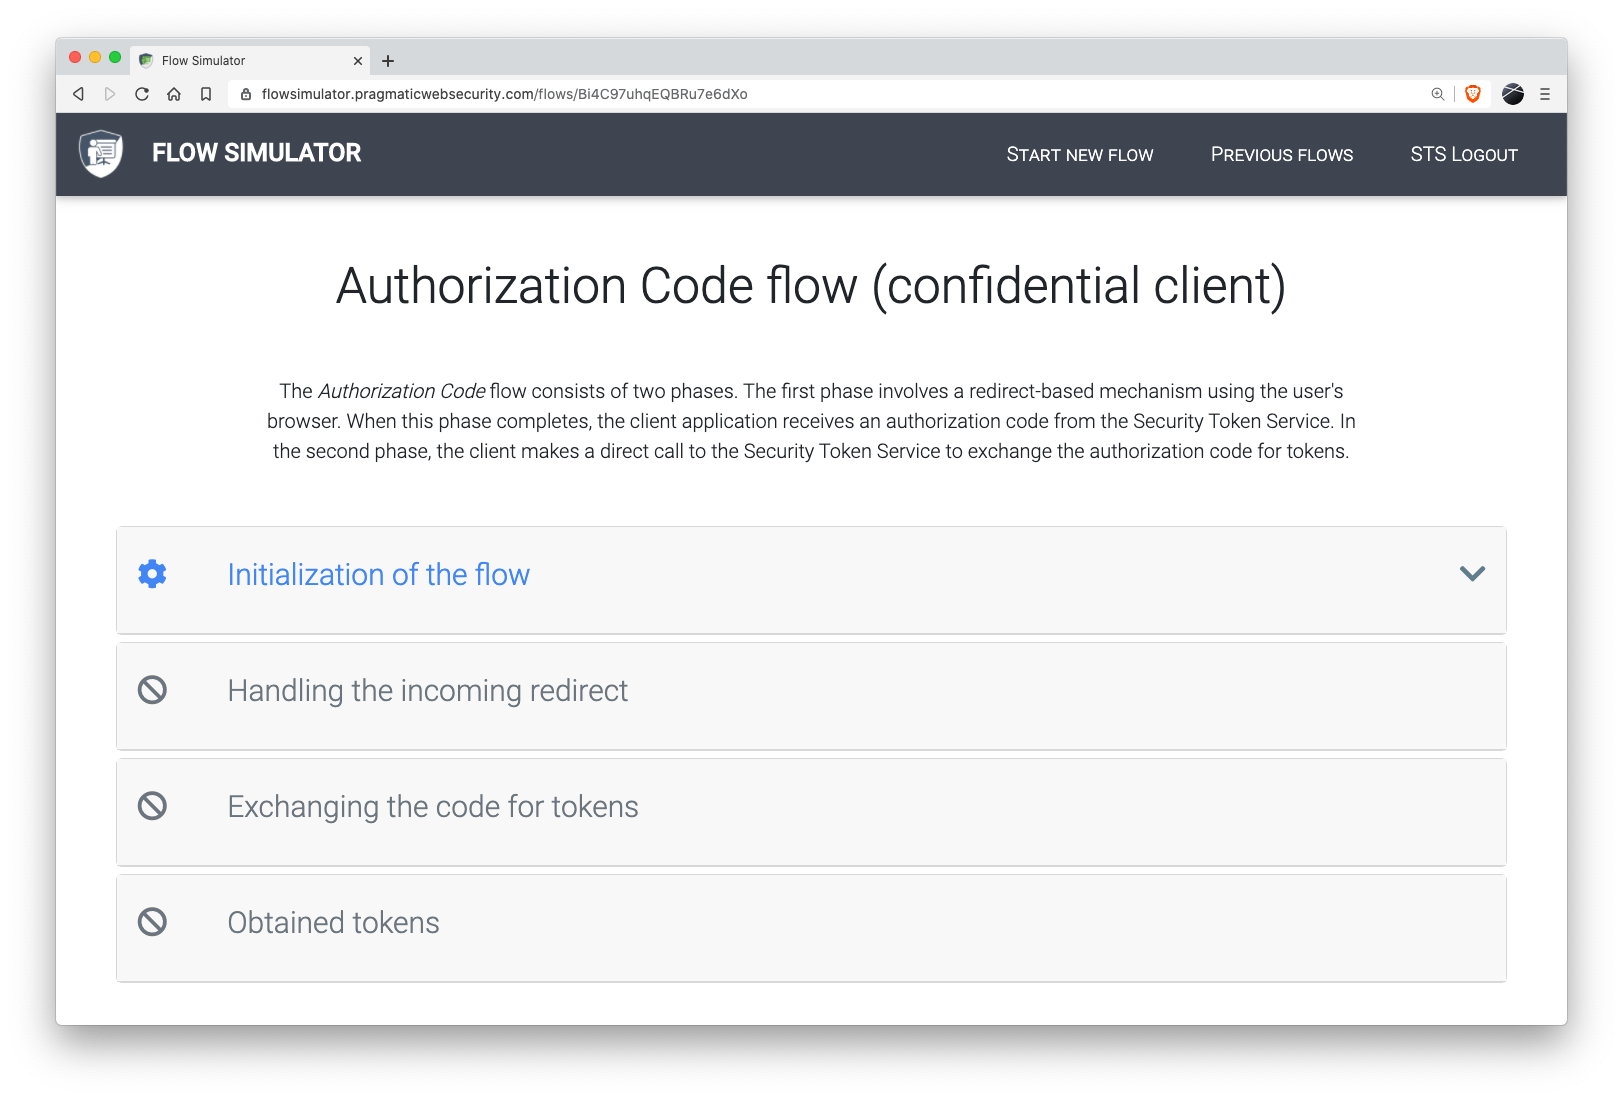 The Flow Simulator visualizes the different steps in an OAuth 2.0 / OIDC flow